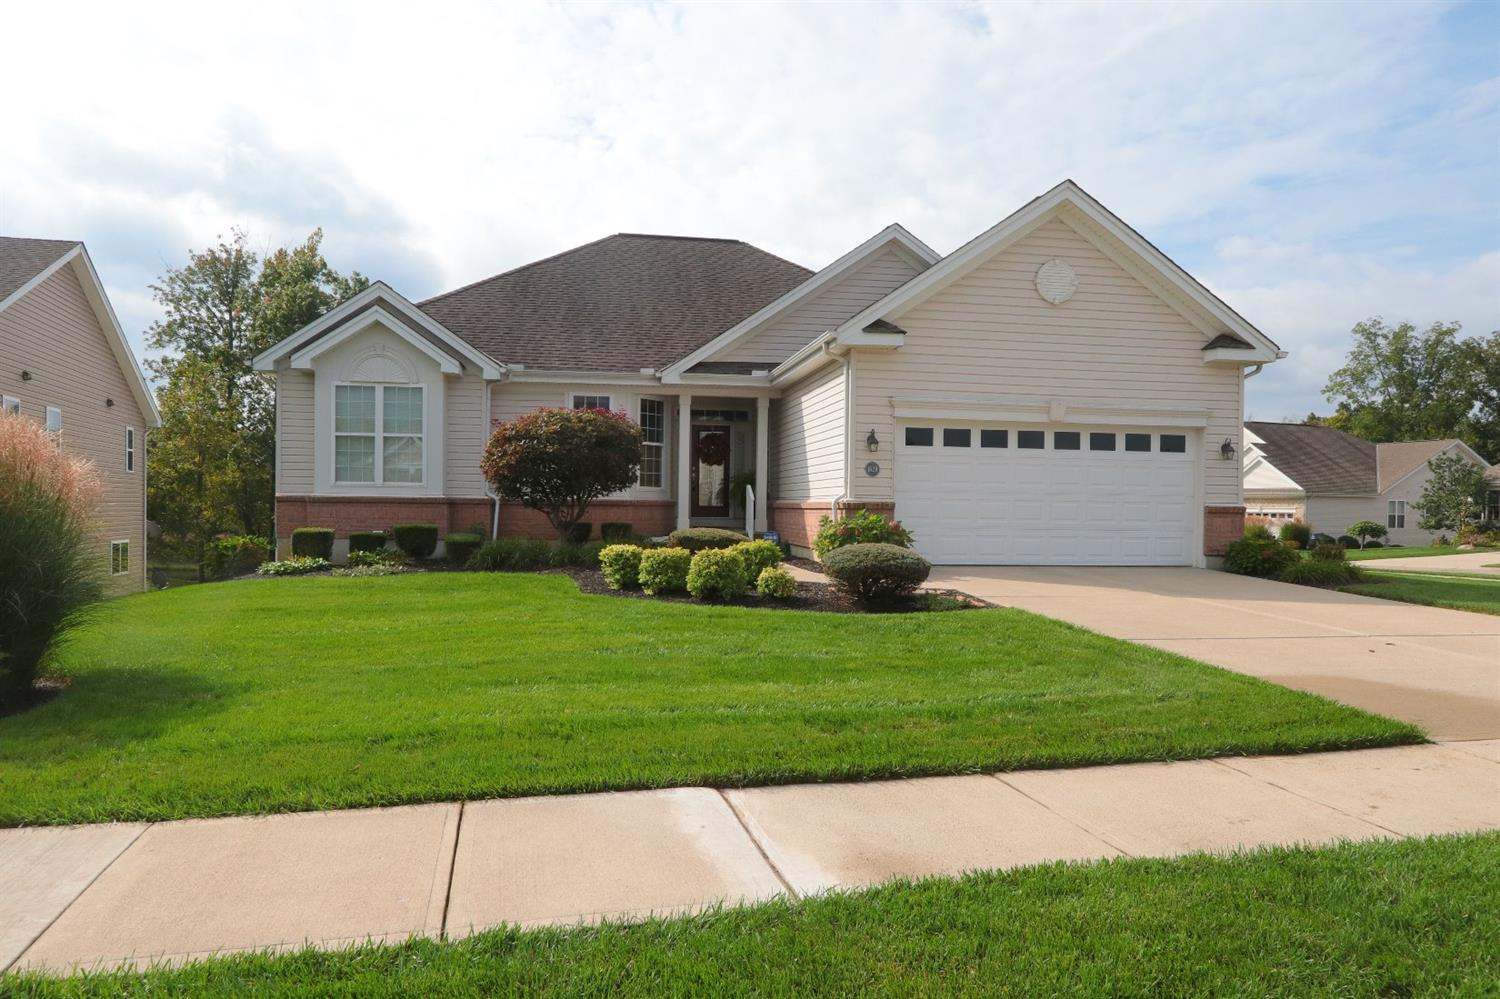 Property for sale at 1629 Heritage Boulevard, Hamilton Twp,  OH 45039